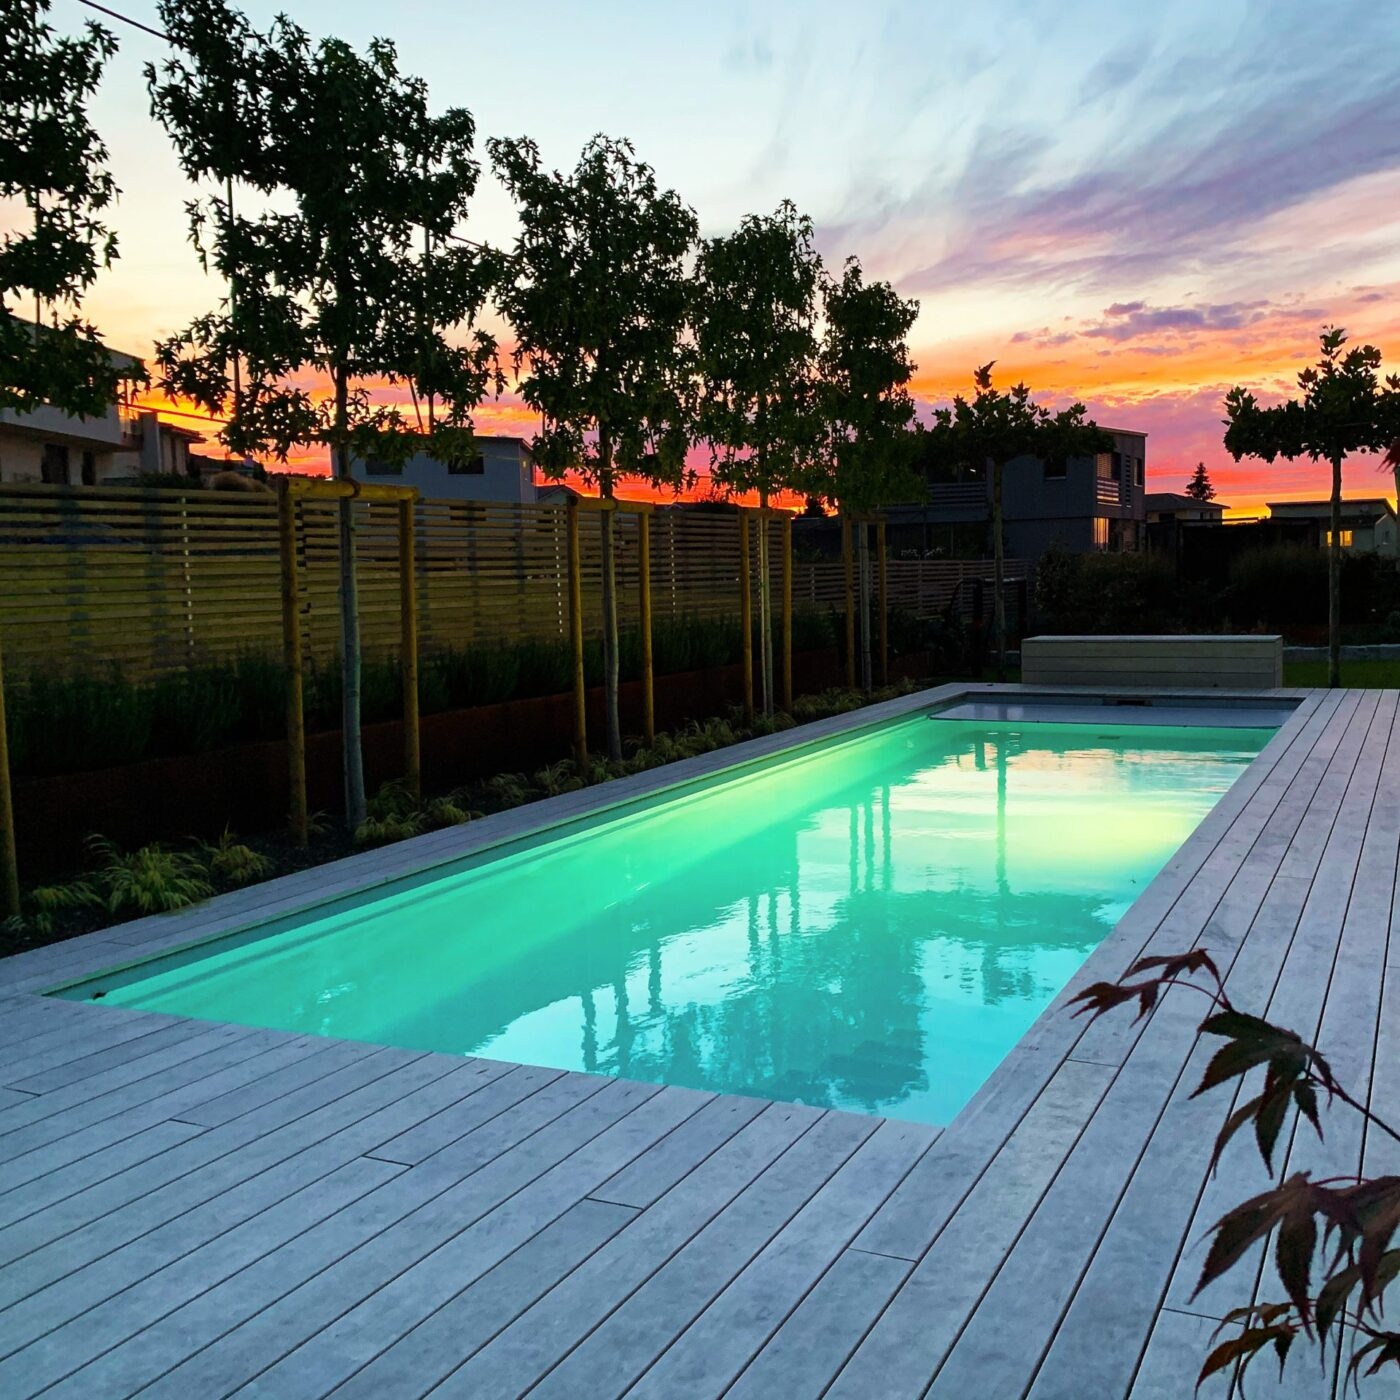 Swimming pool surrounded by wood decking